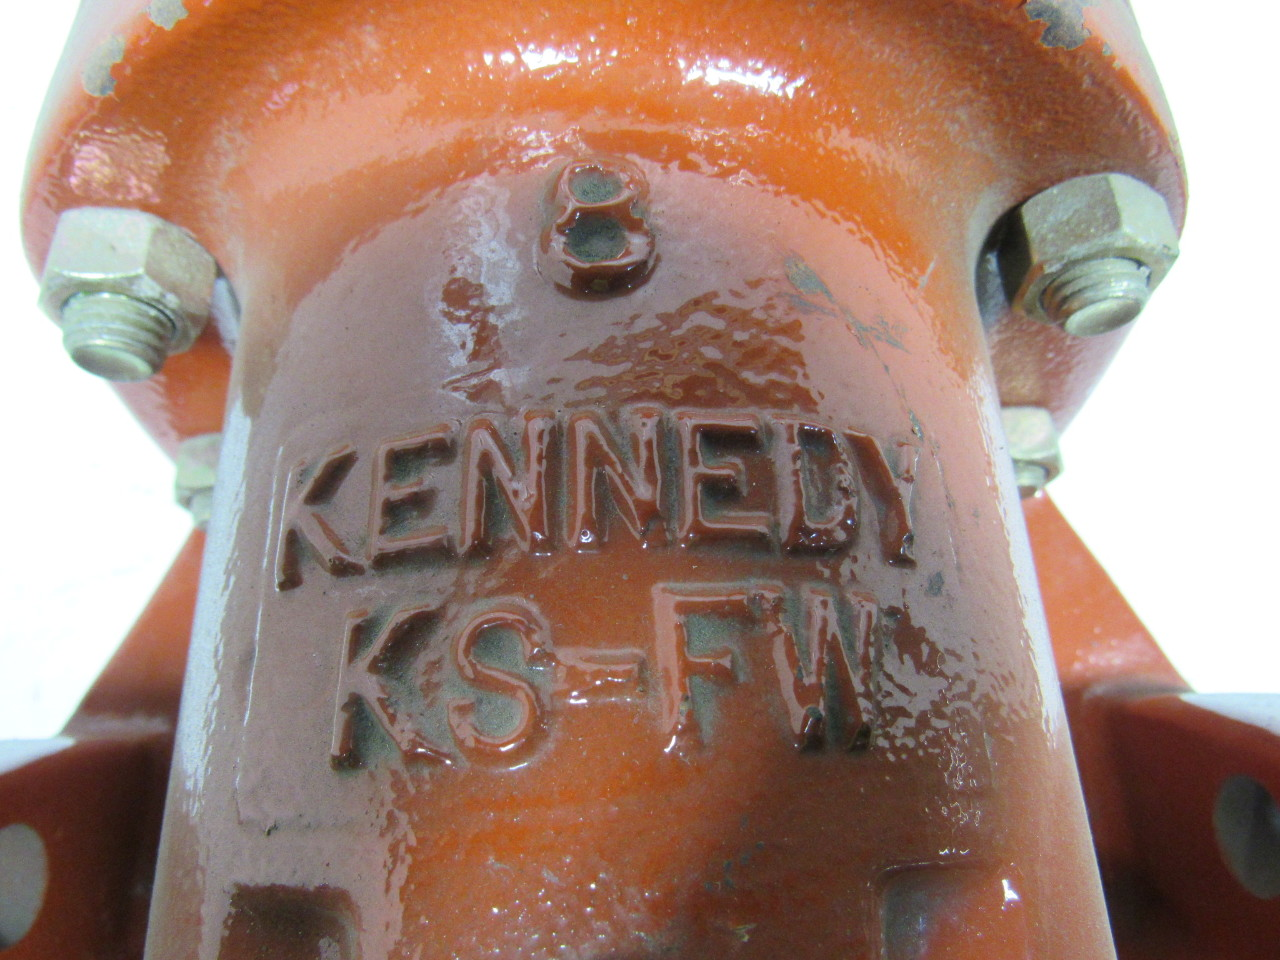 Kennedy Awwa C509 8 Quot Ks Fw Resilient Wedge Gate Valve Flanged